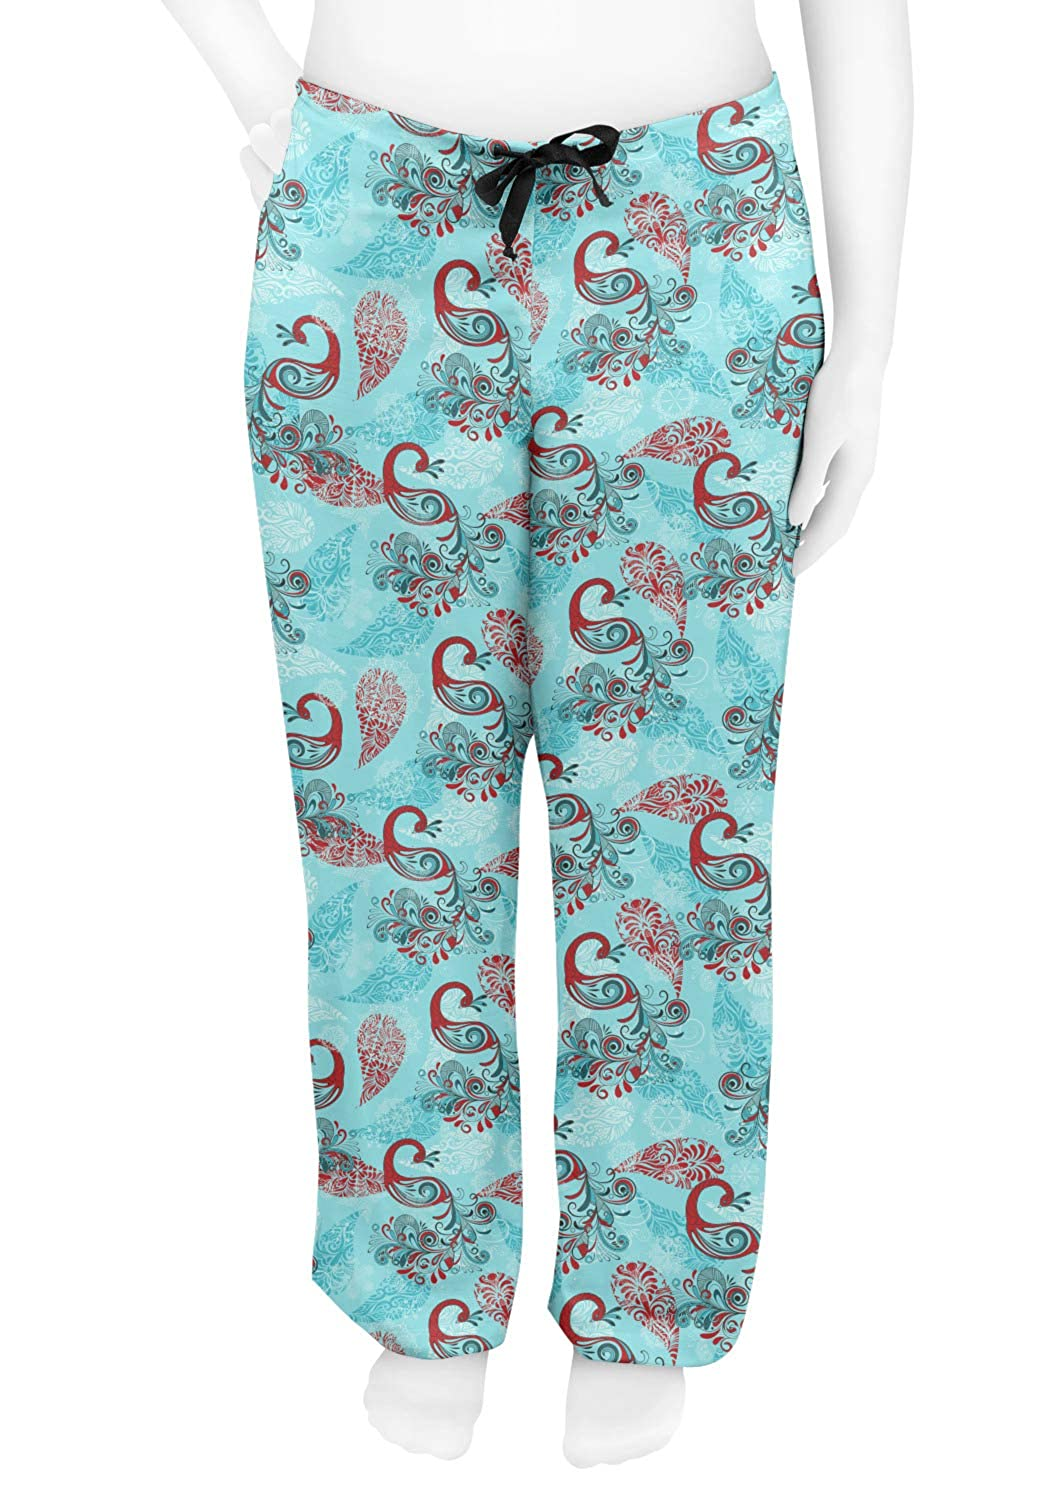 Personalized RNK Shops Peacock Womens Pajama Pants